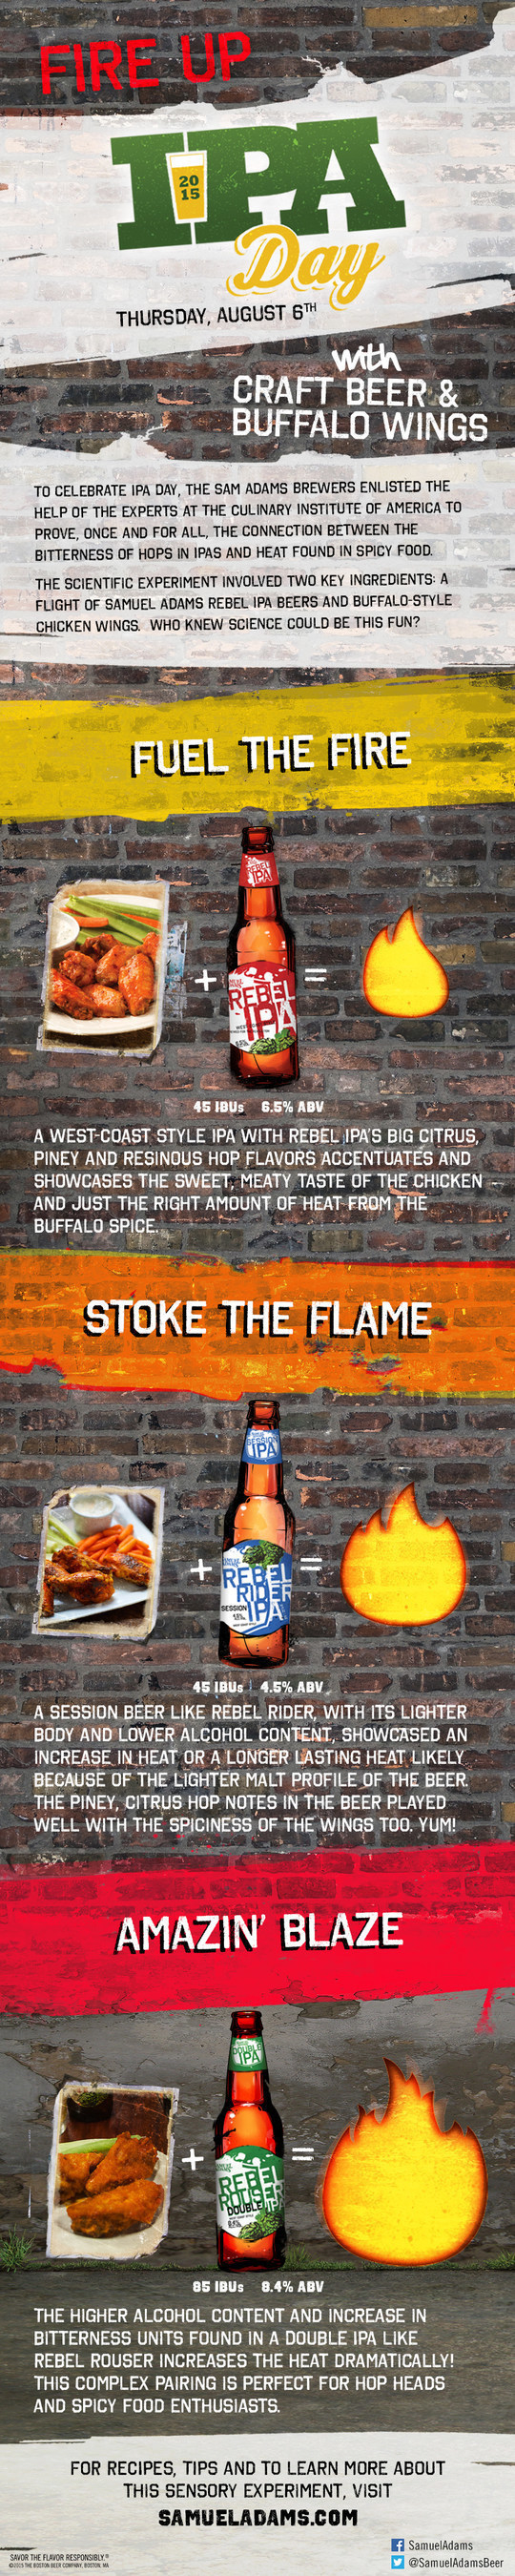 Fire Up IPA Day with Craft Beer and Buffalo Wings